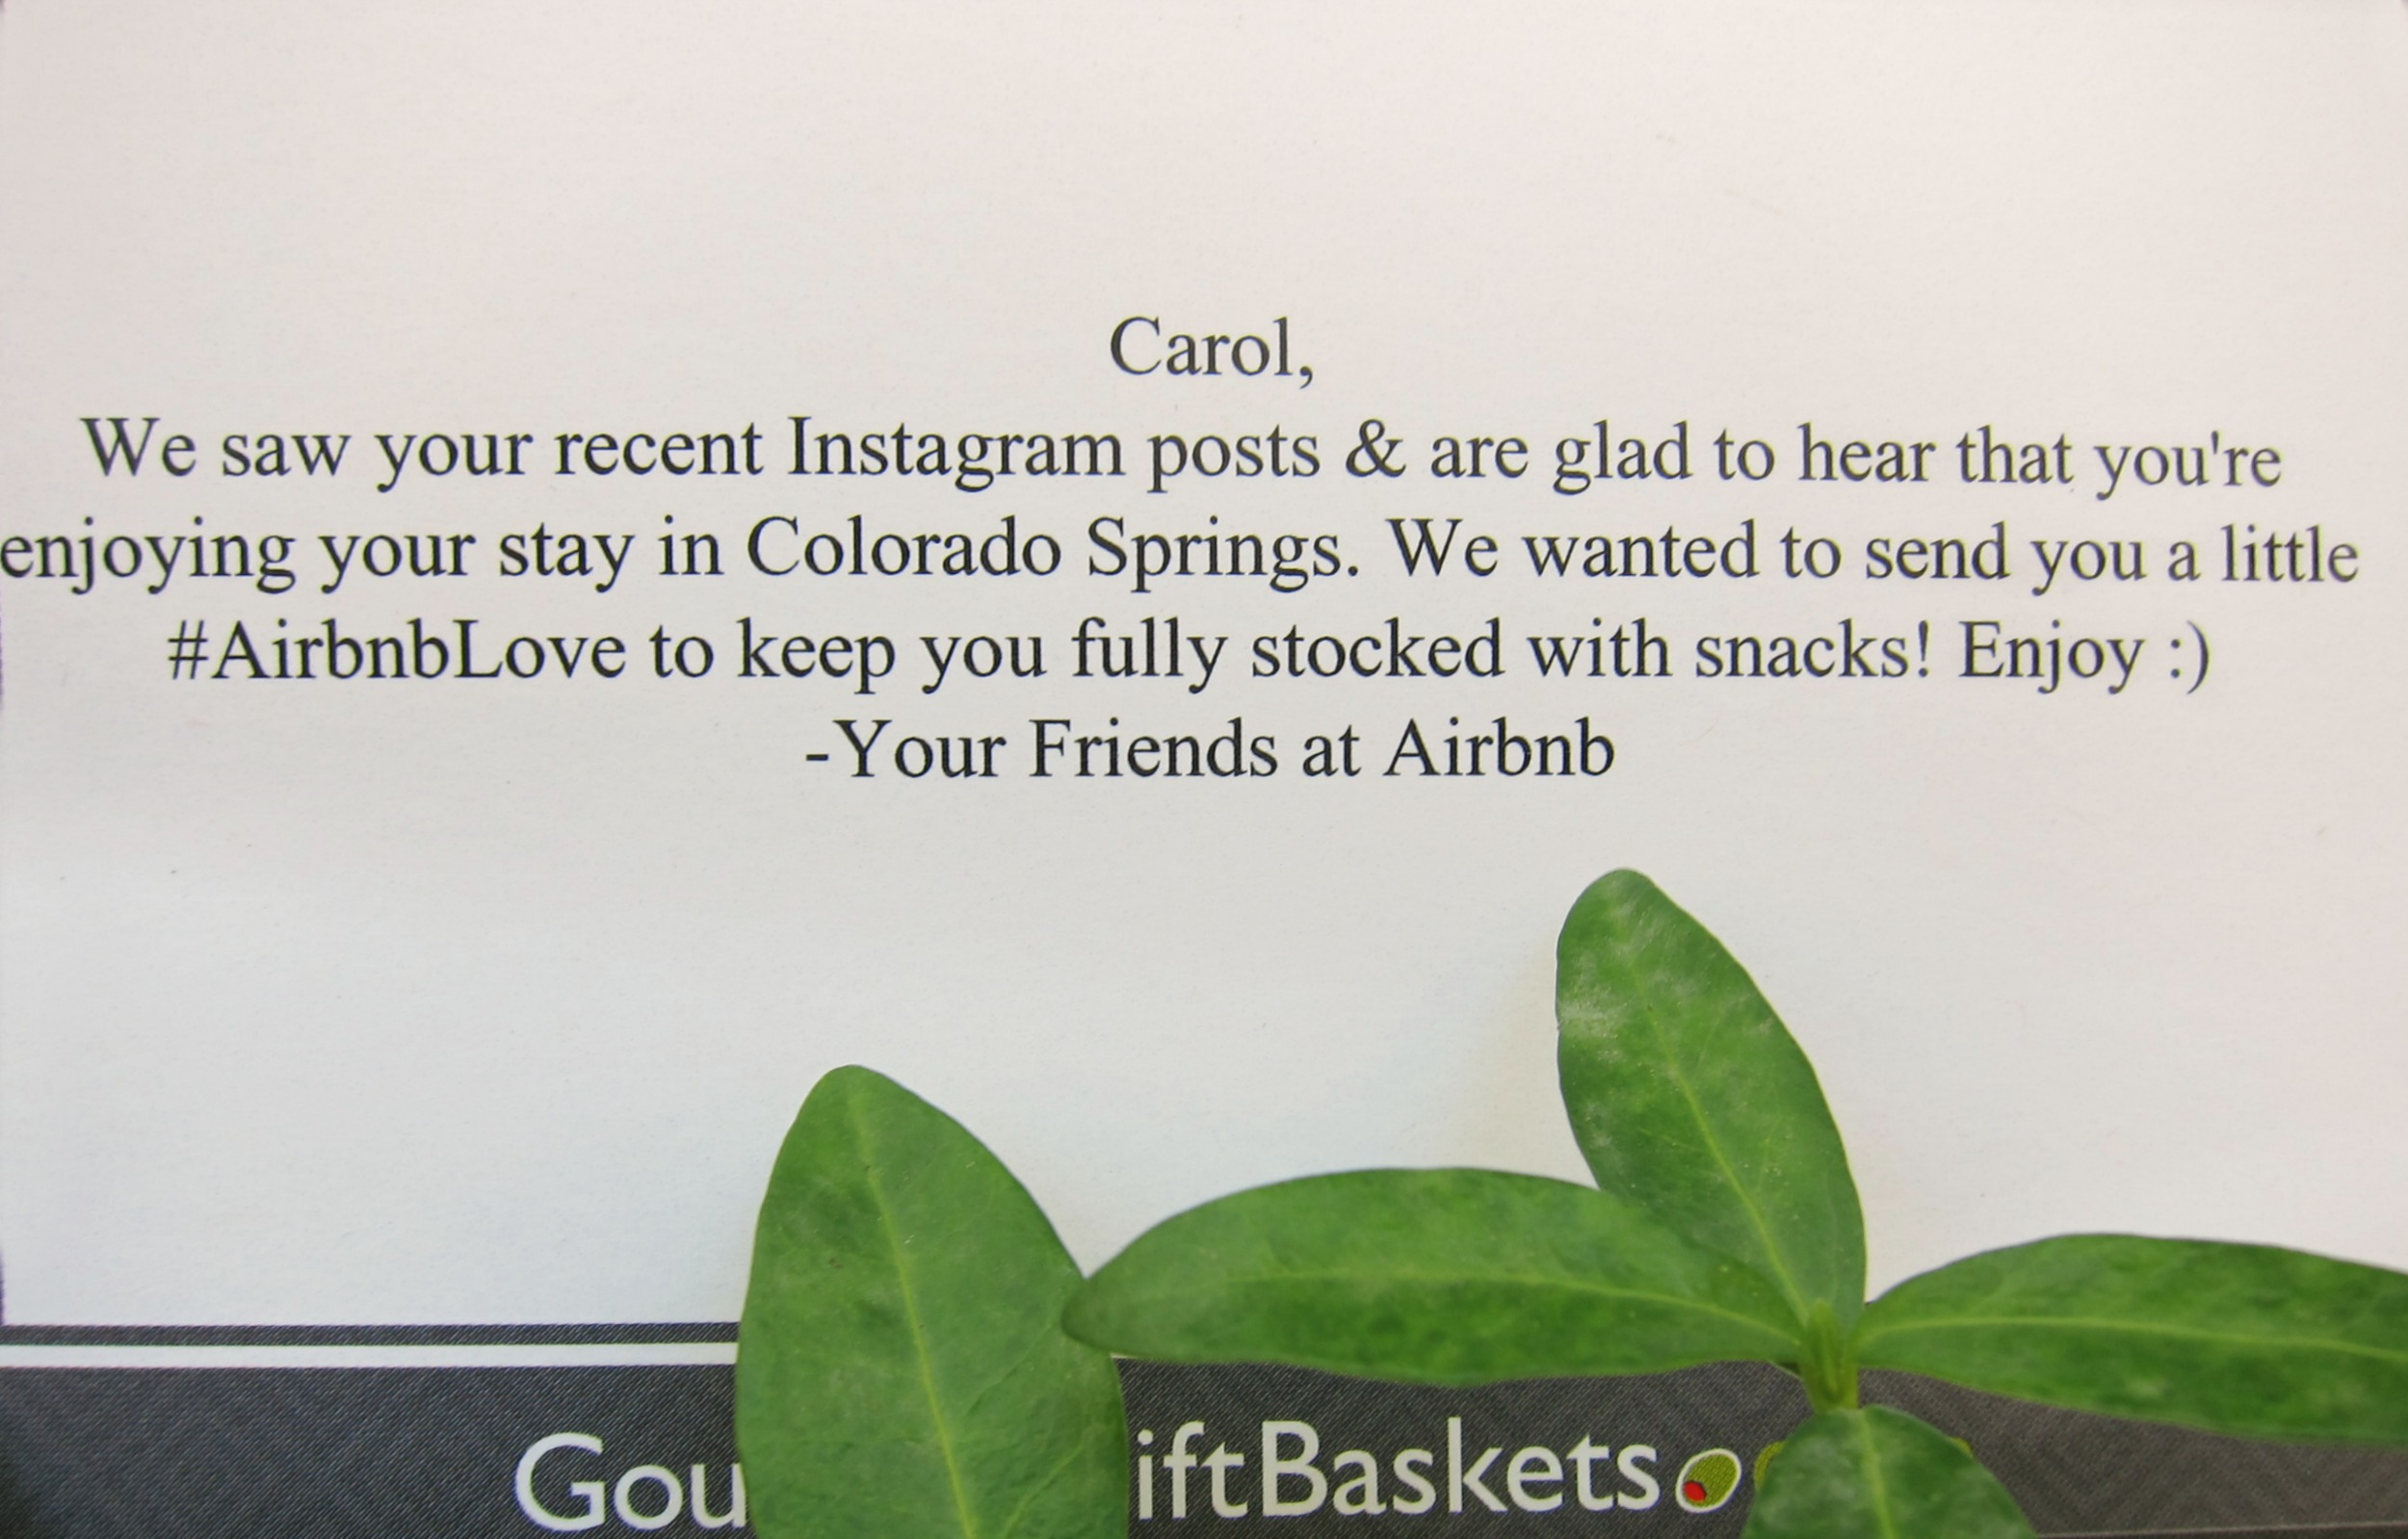 Thanks for listening to your community, Airbnb. And for the very yummy snacks!